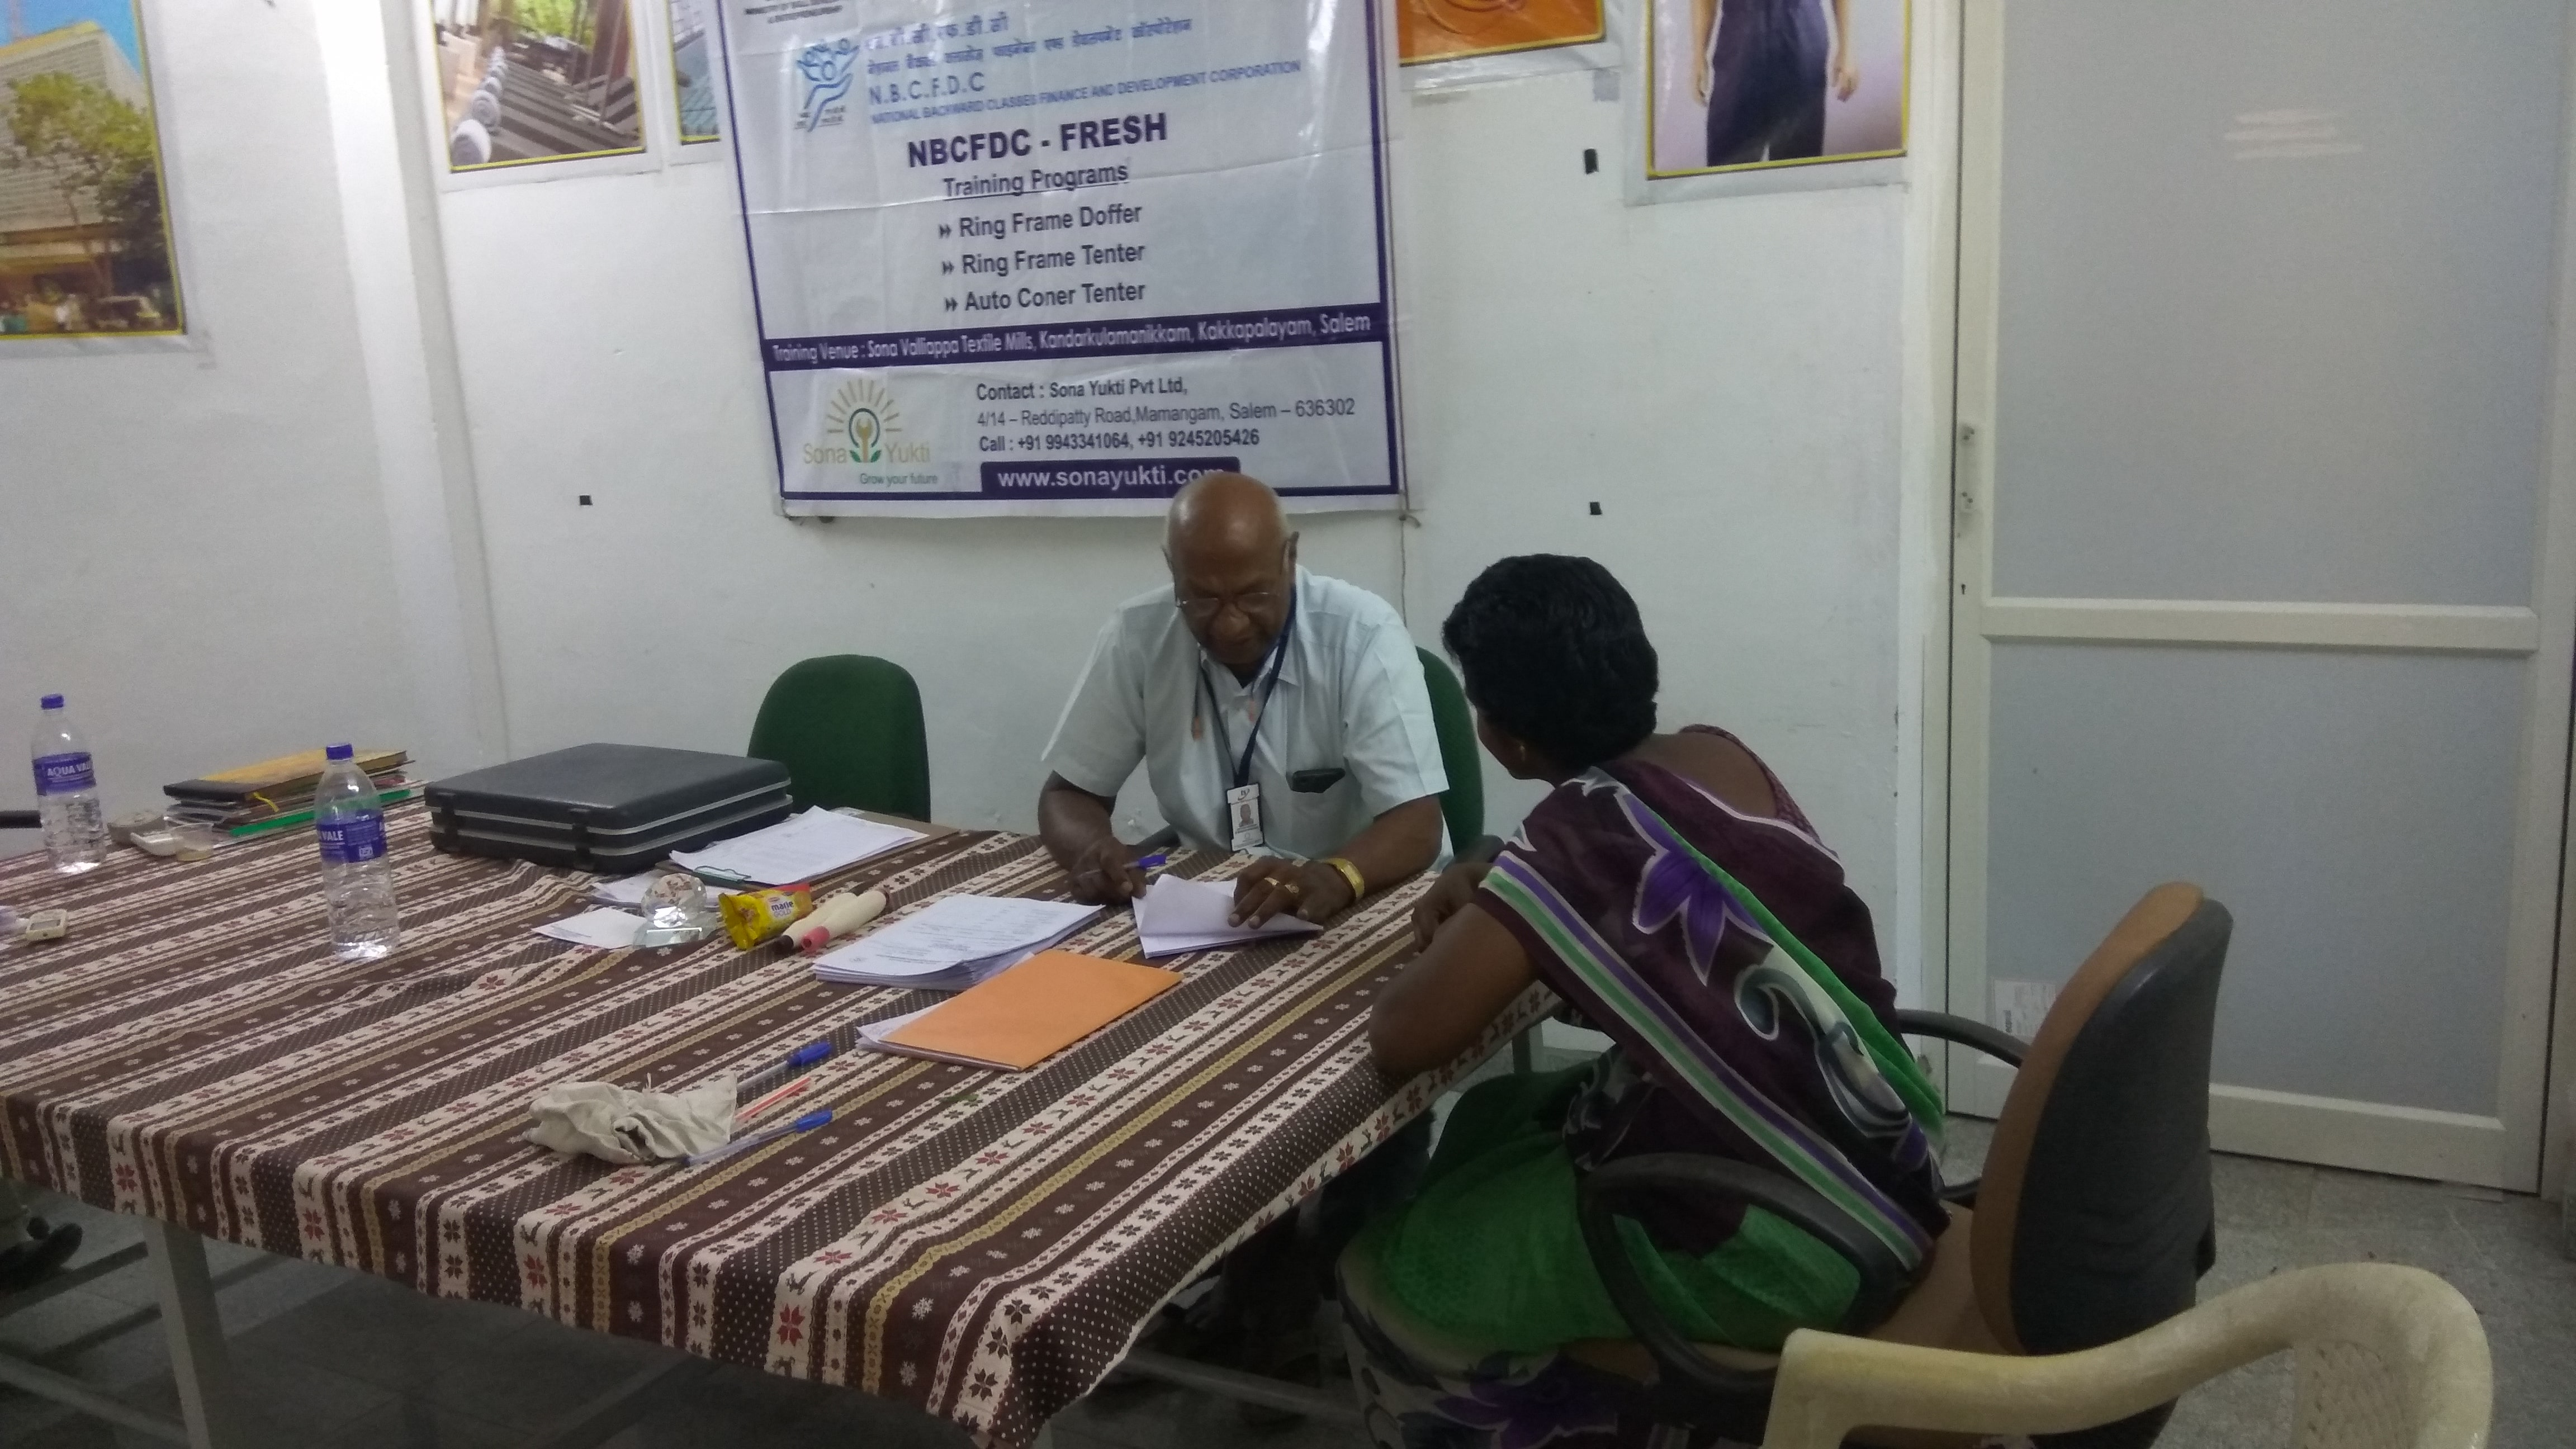 NBCFDC Sona Yukti Short Term Textile Training Courses